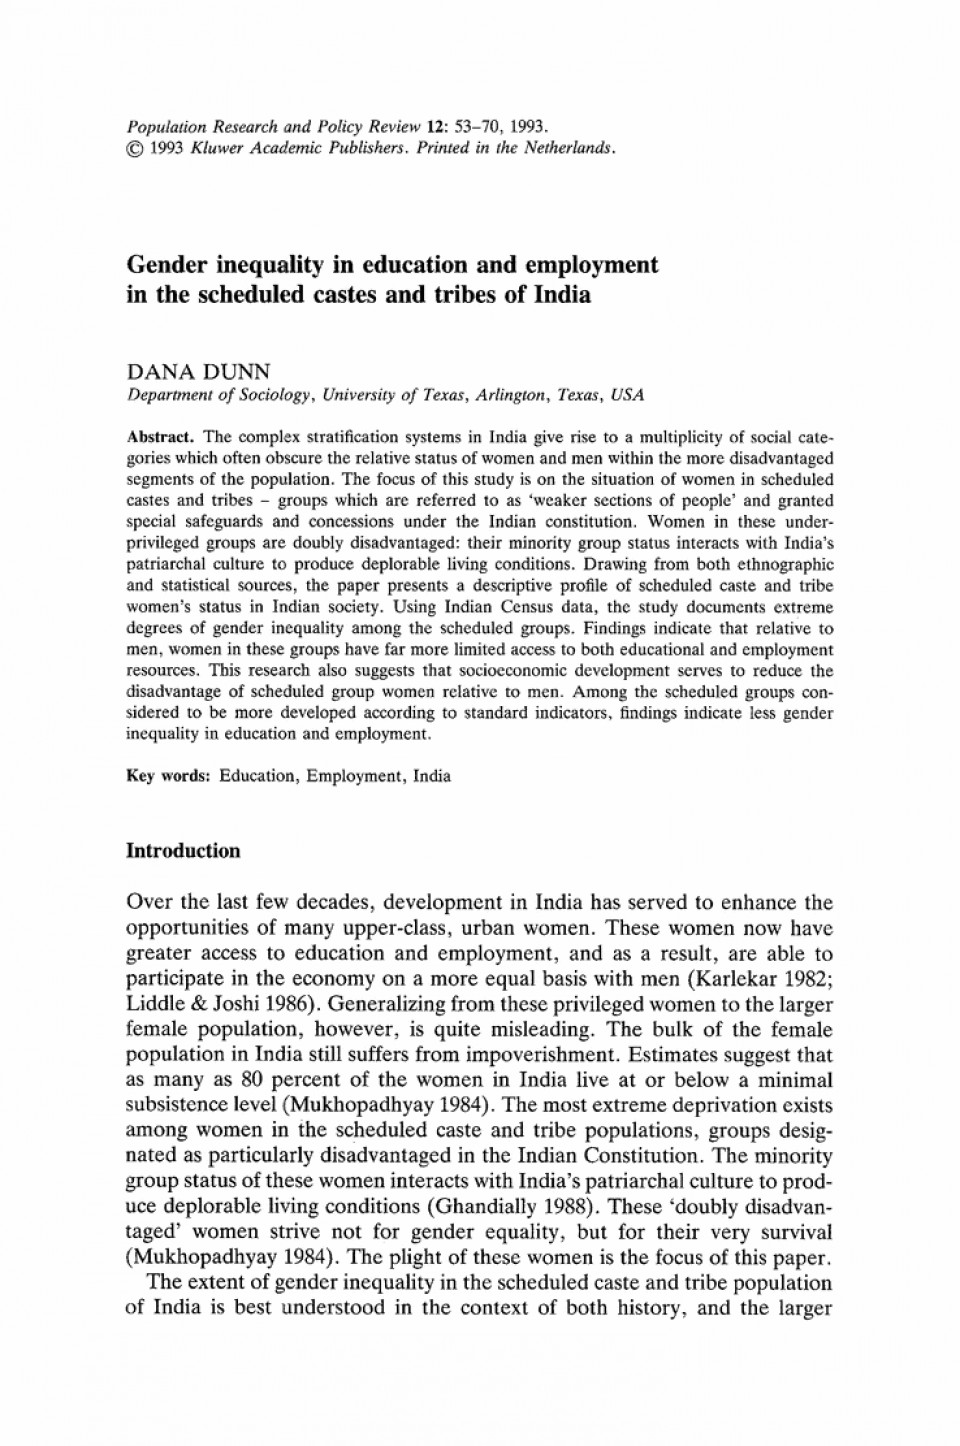 005 Essay Example Equality About Education And Employment On In Indiaathenata Com Gender L Formidable Questions Titles 960